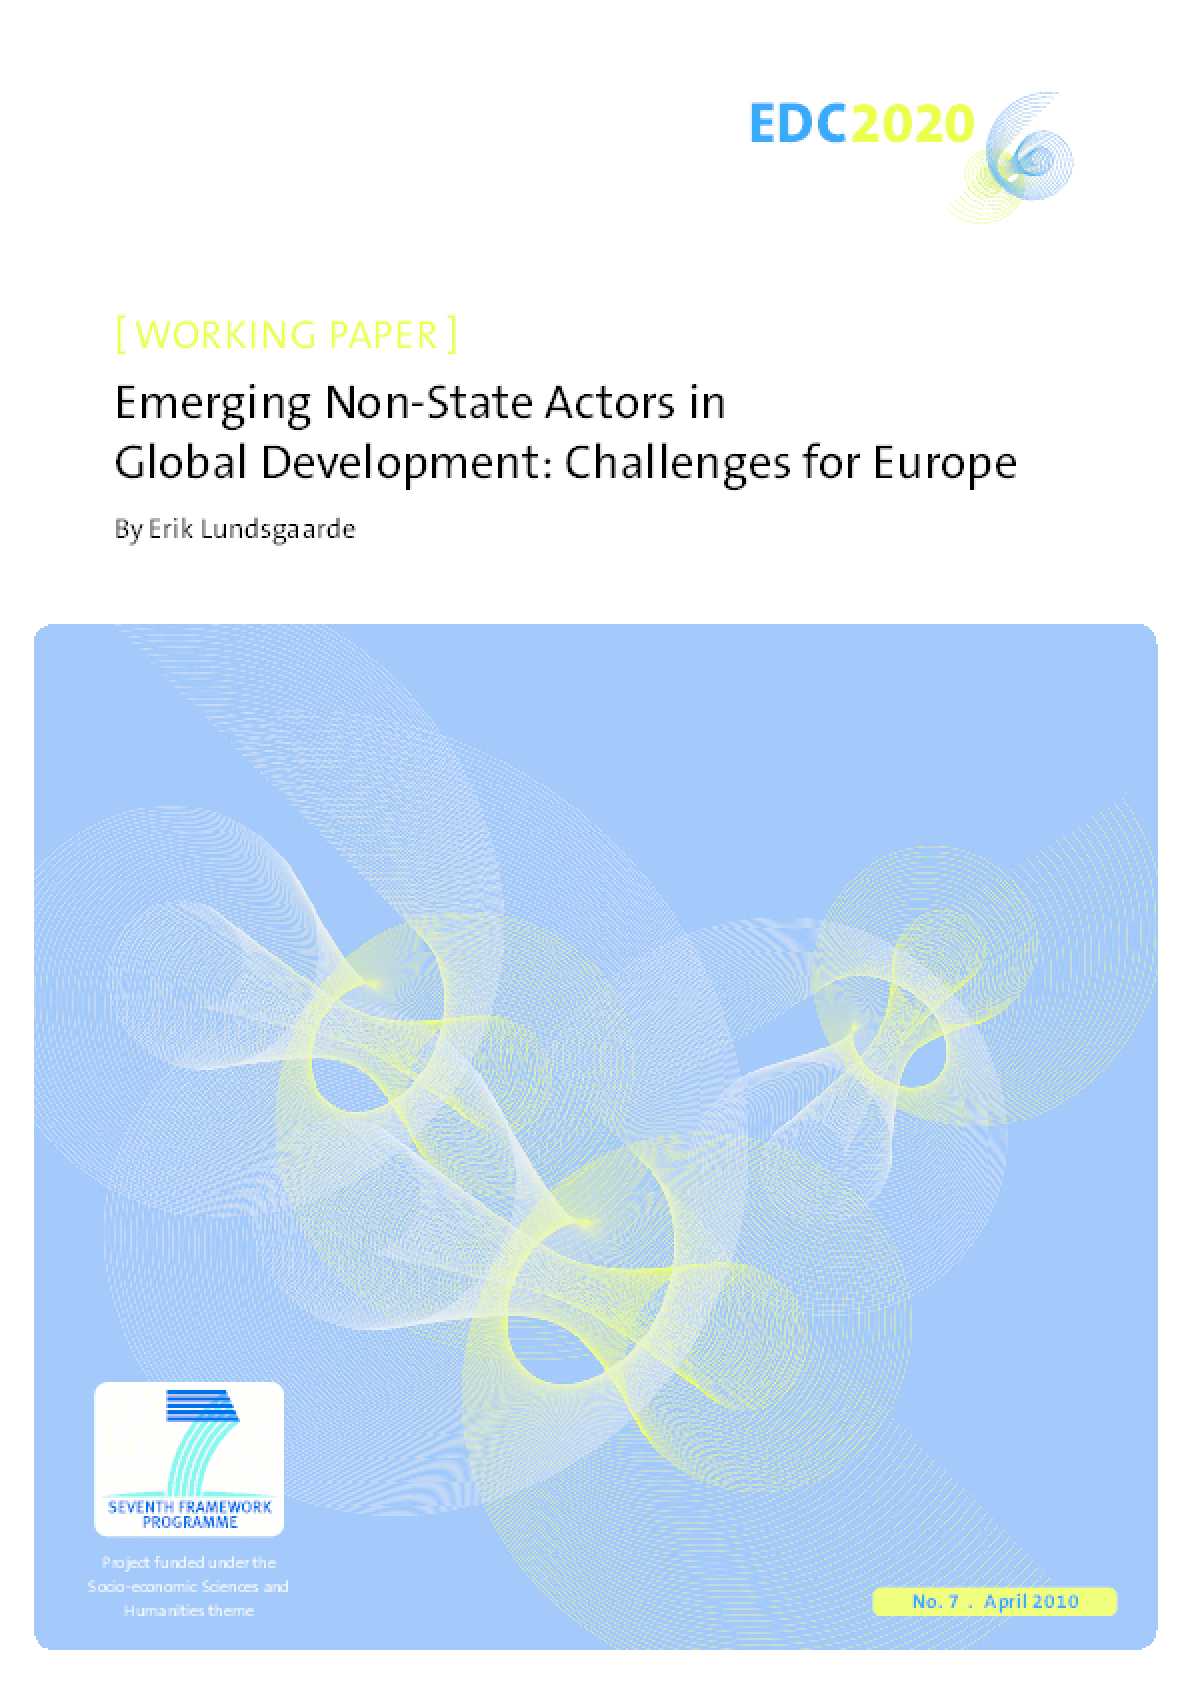 Emerging Non-state Actors in Global Development: Challenges for Europe